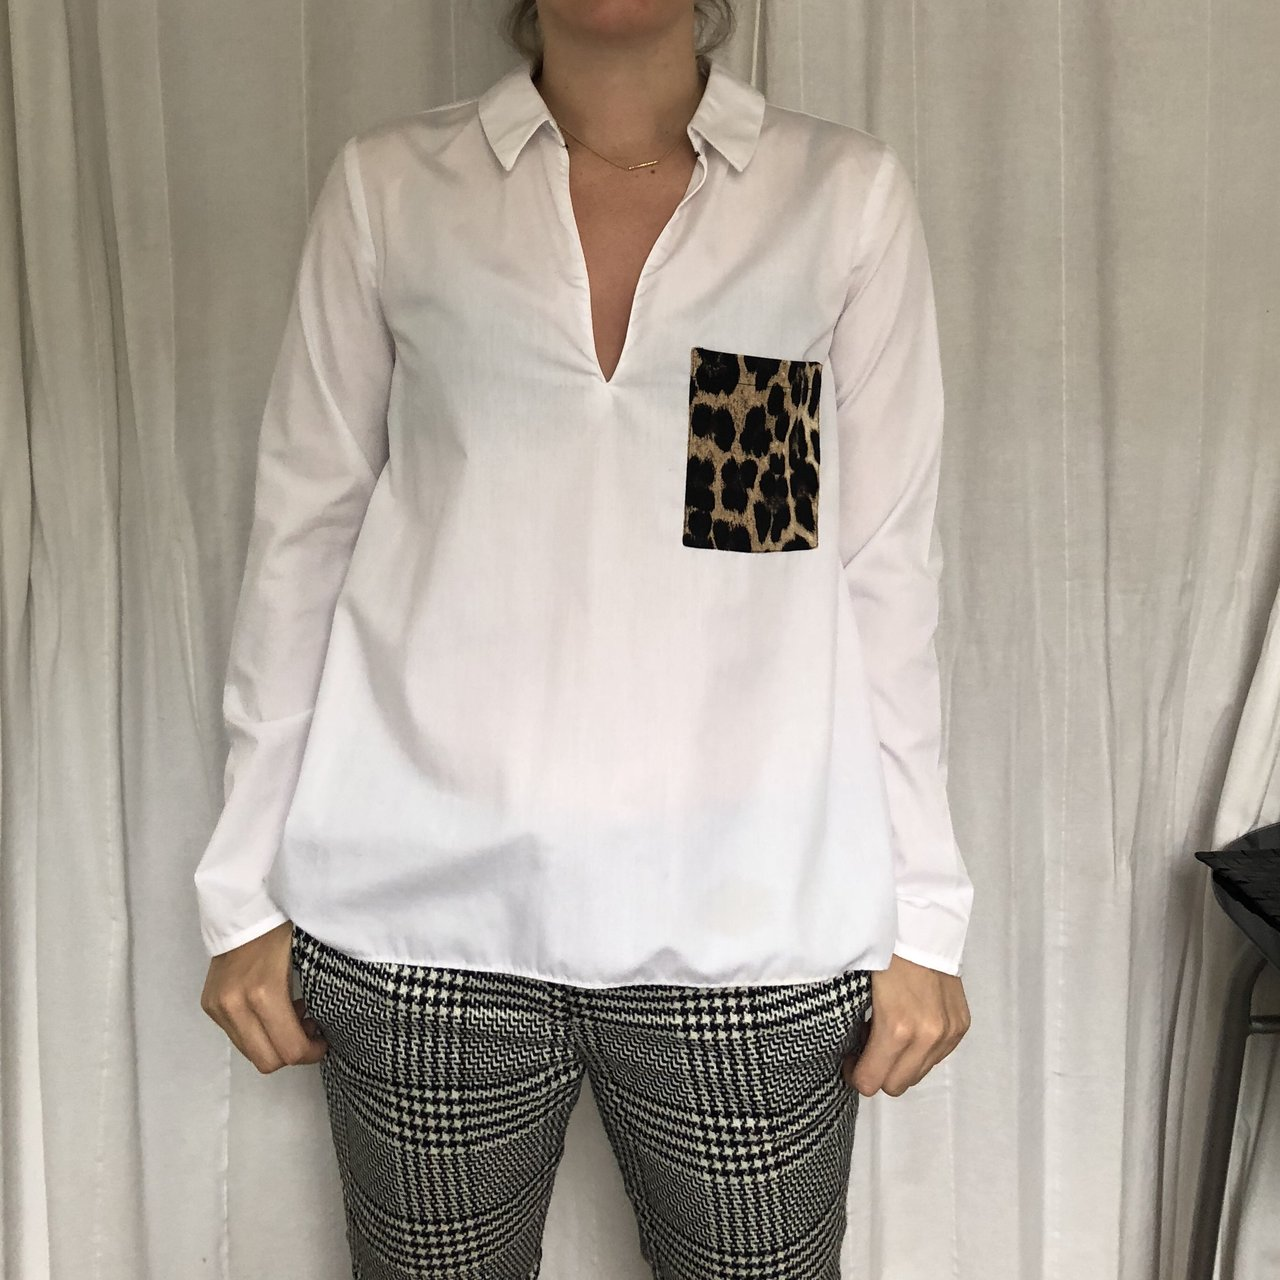 a436425bf6493 White shirt with leopard print detail from Zara Size worn - Depop